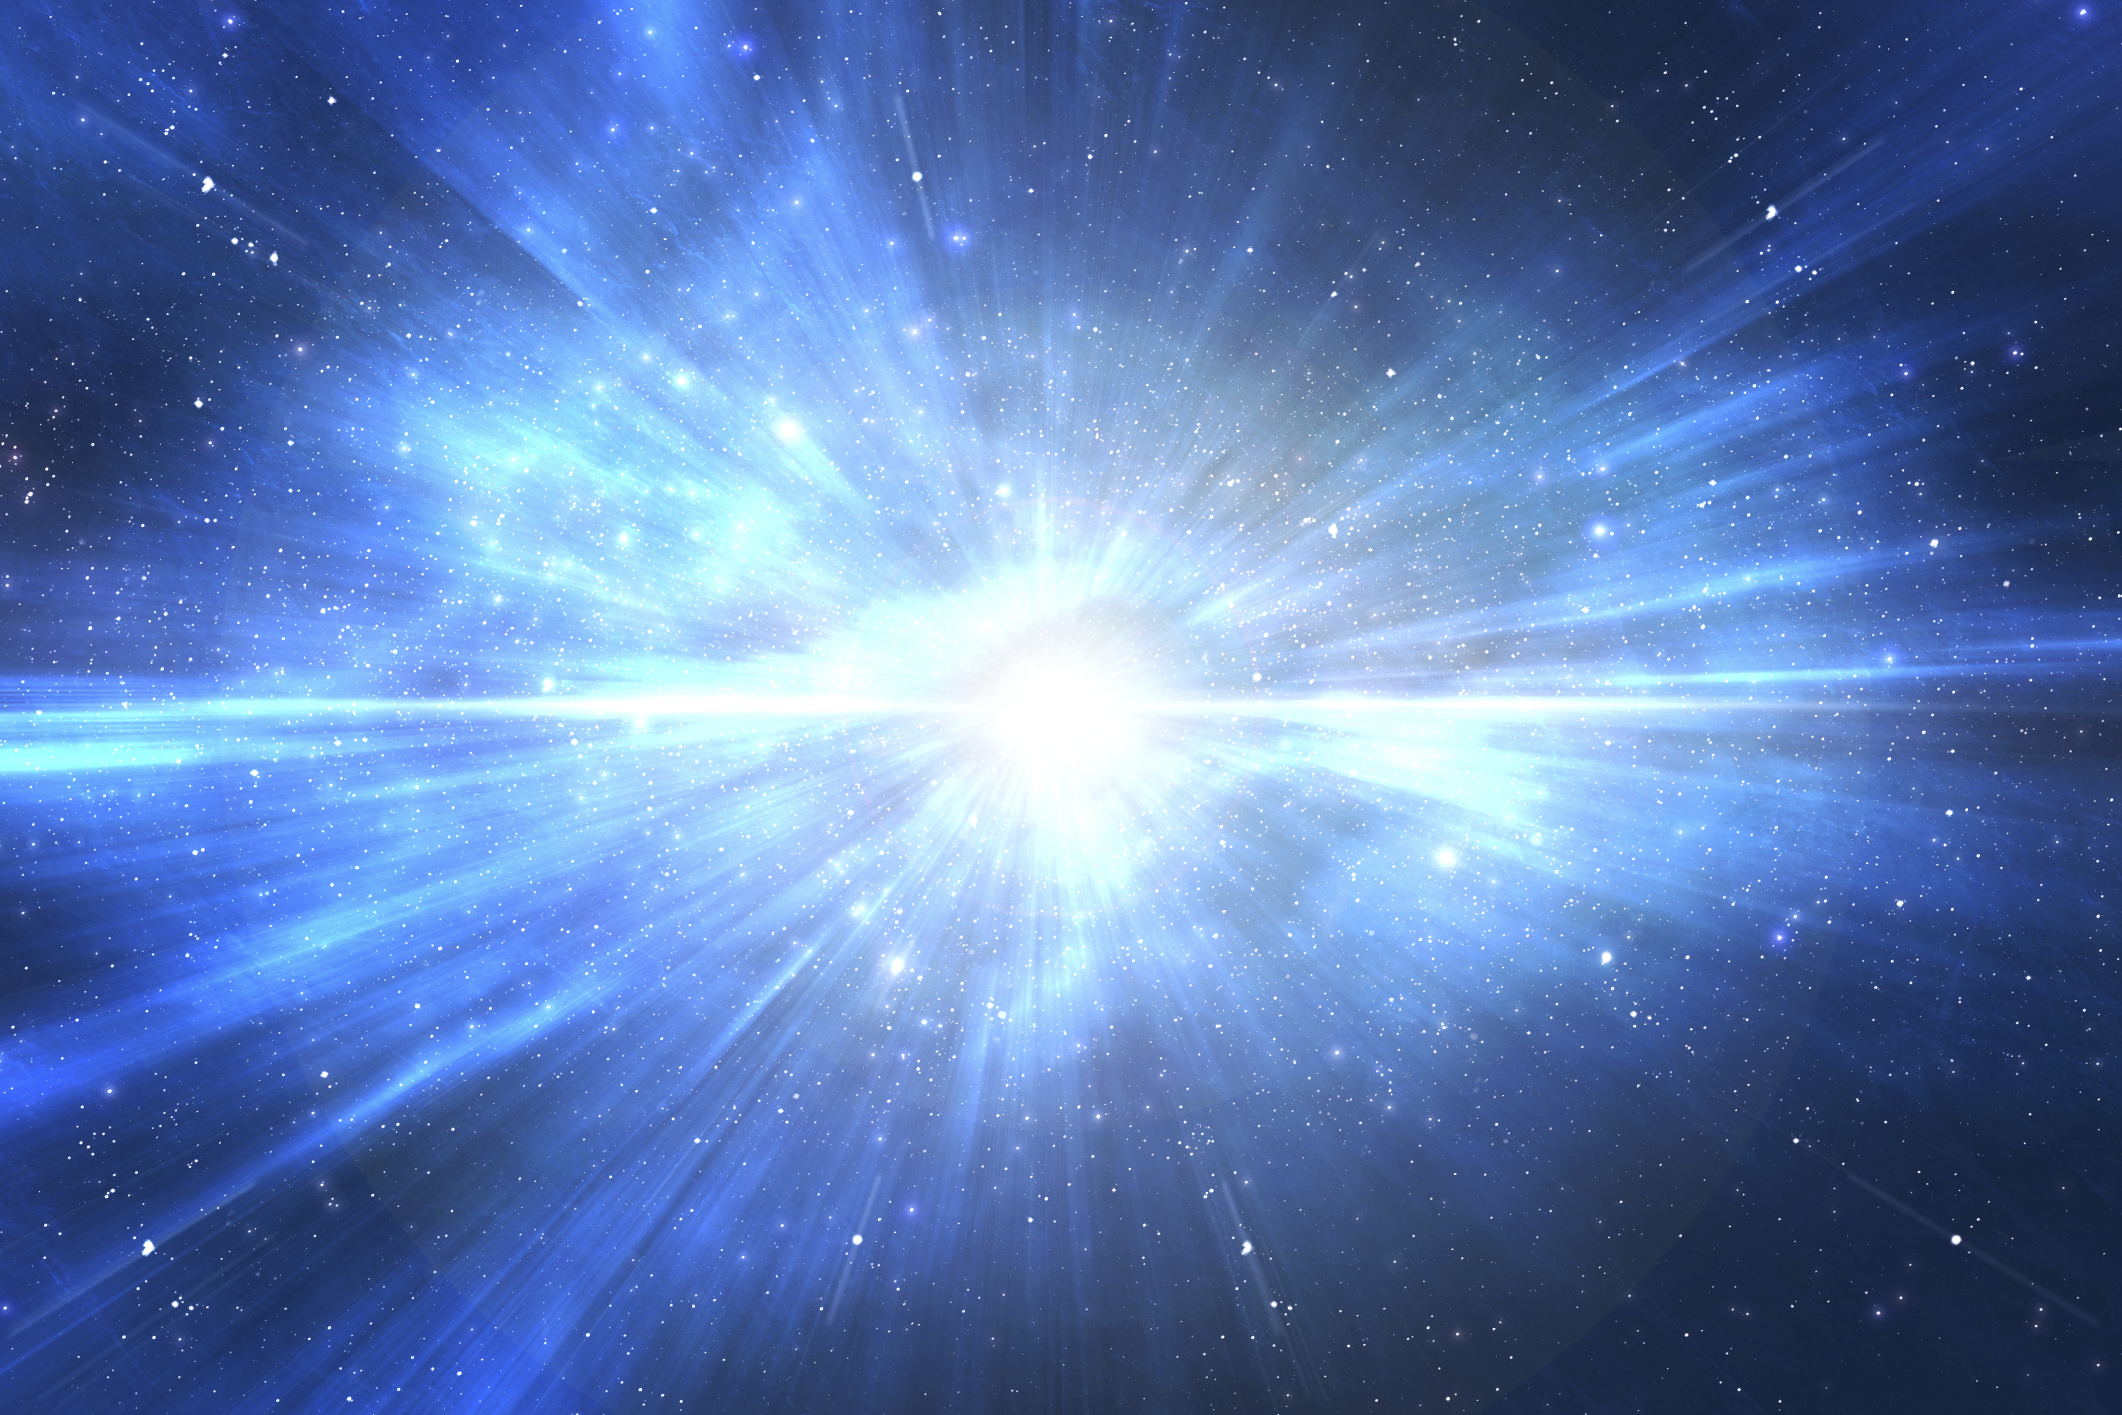 Star explosion in space